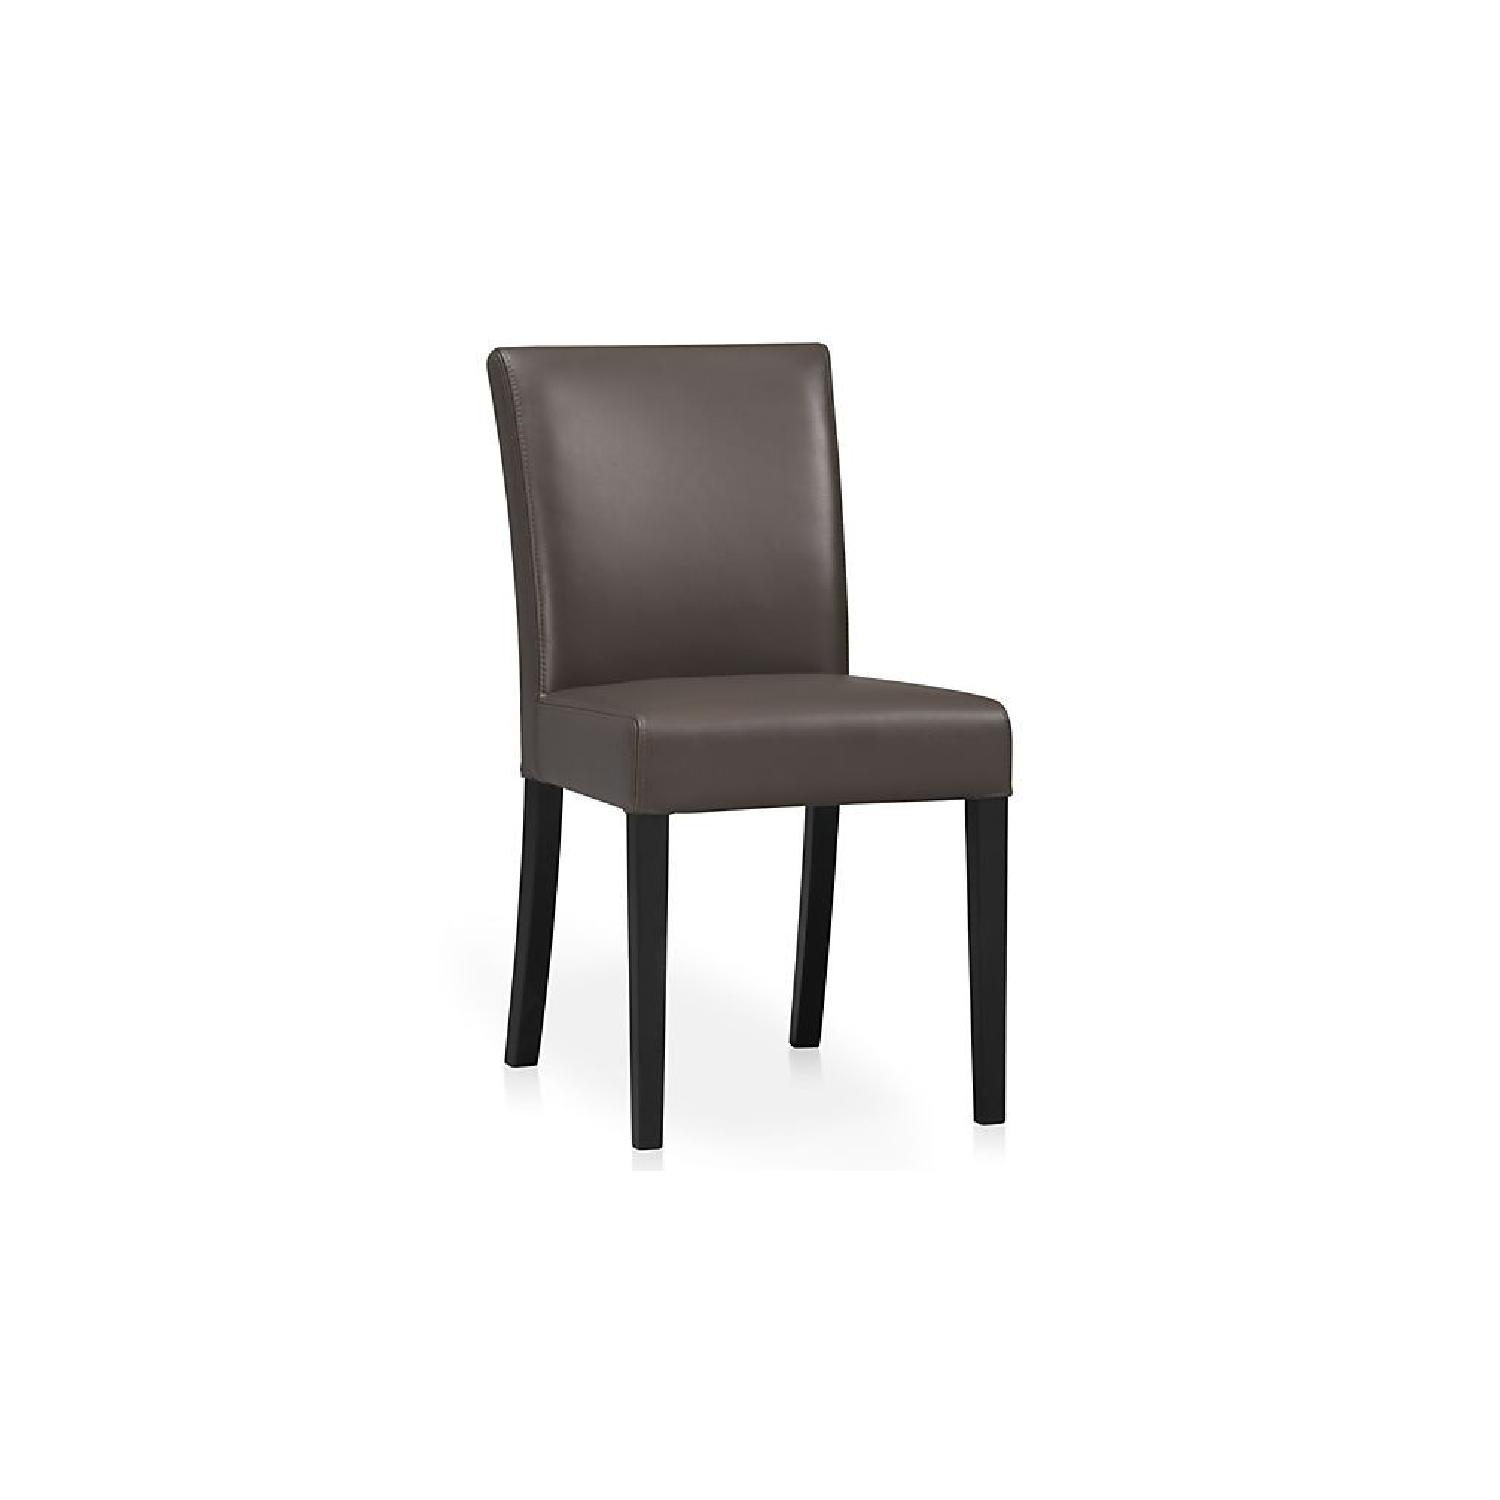 Crate & Barrel Lowe Smoke Leather Dining Chairs